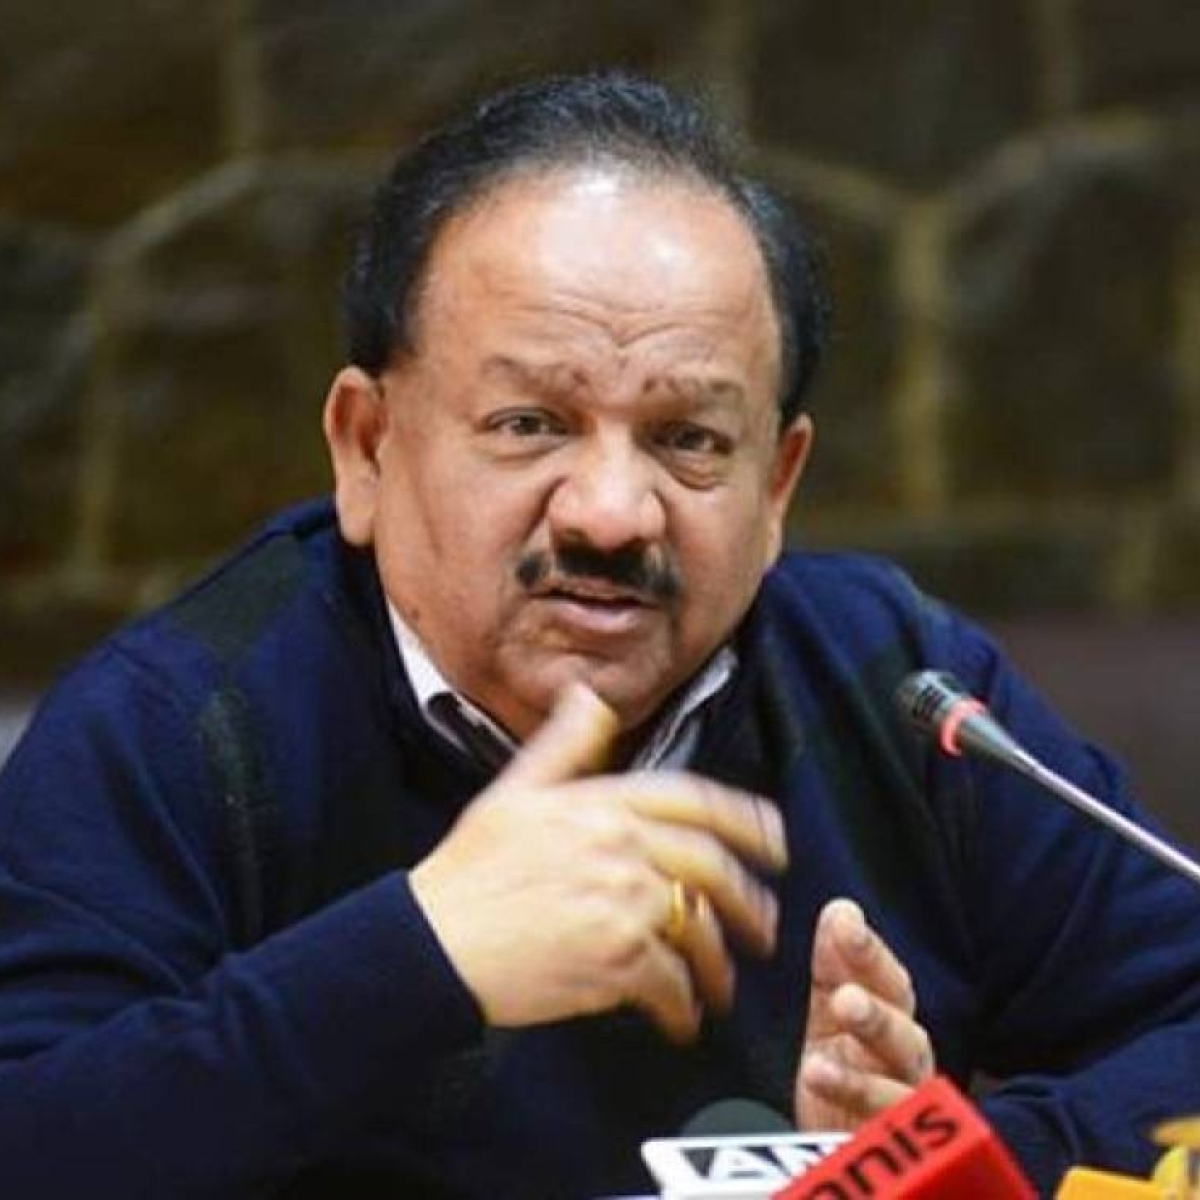 Some localised pockets but no community transmission of COVID-19 in the country: Dr Harsh Vardhan